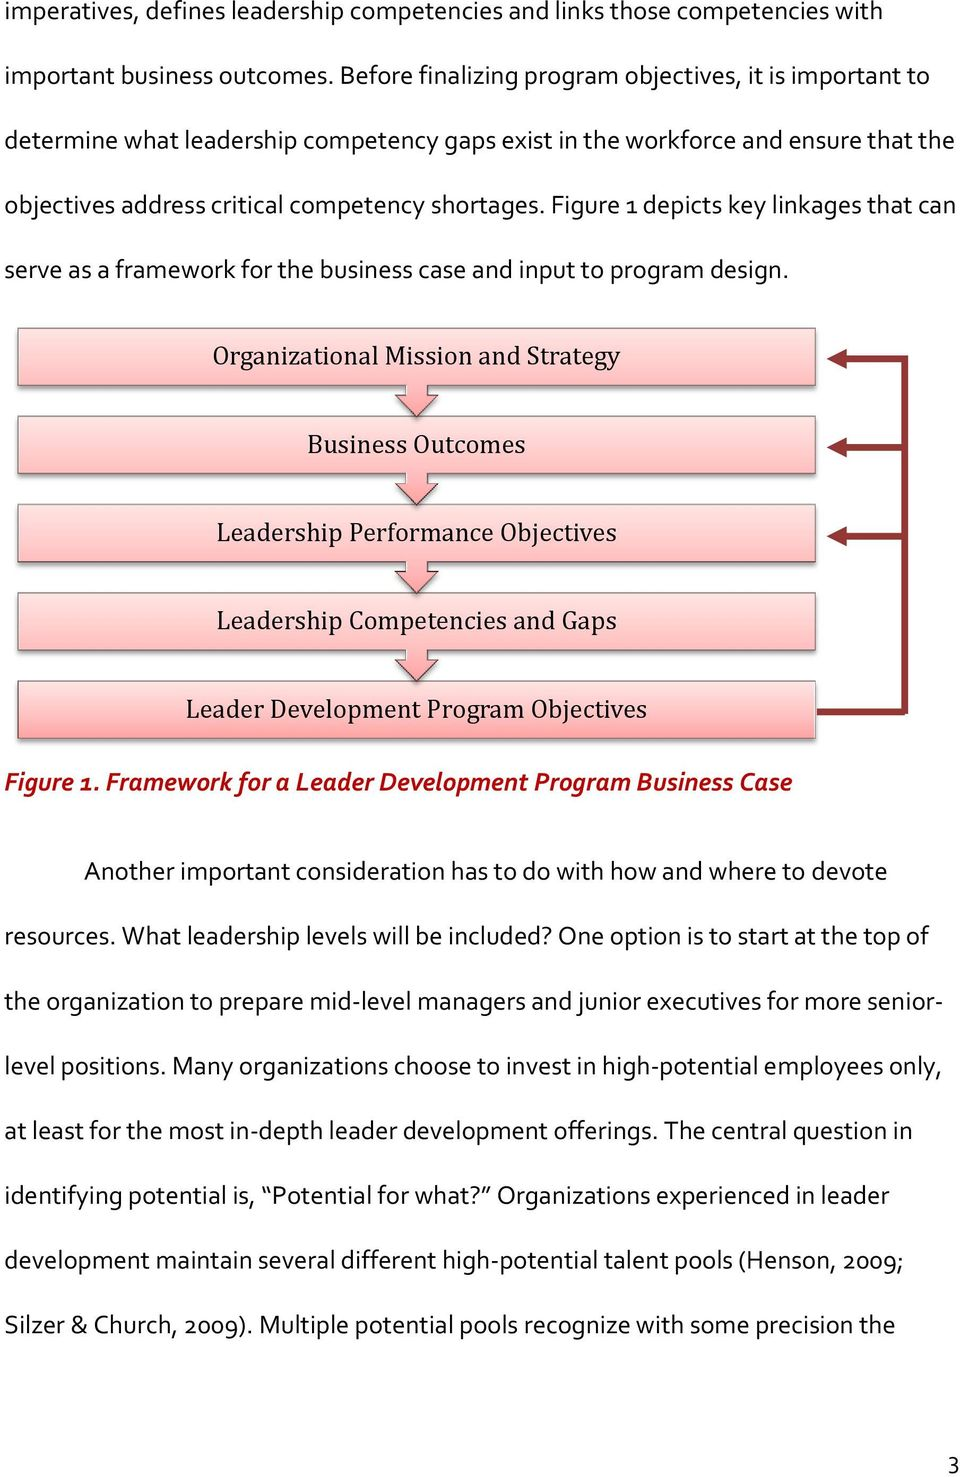 Figure 1 depicts key linkages that can serve as a framework for the business case and input to program design.